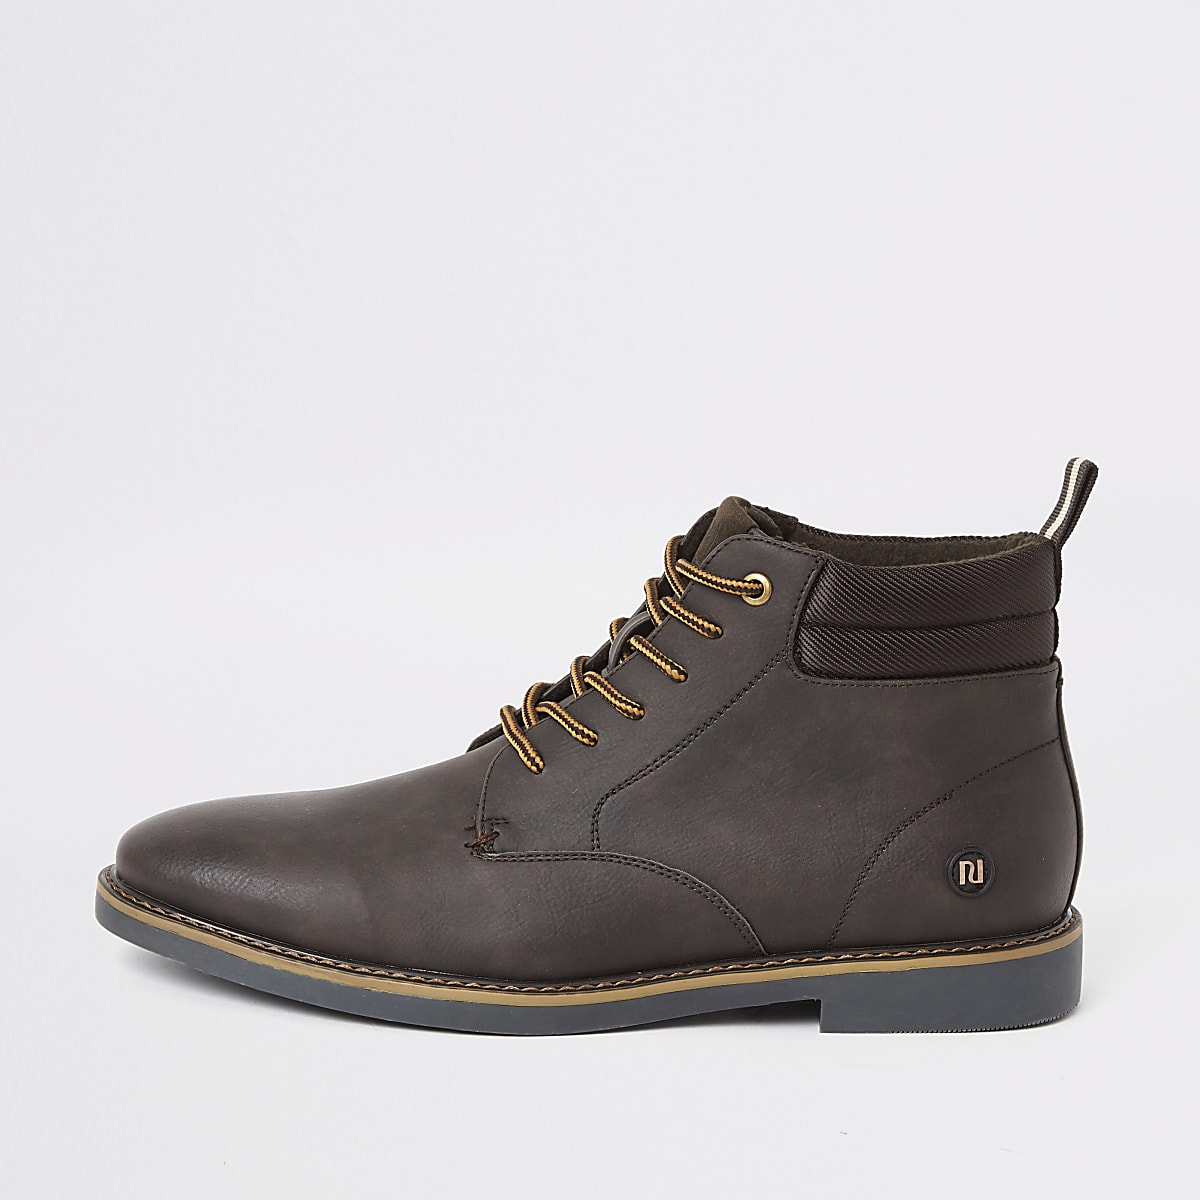 Dark brown lace-up chukka boots